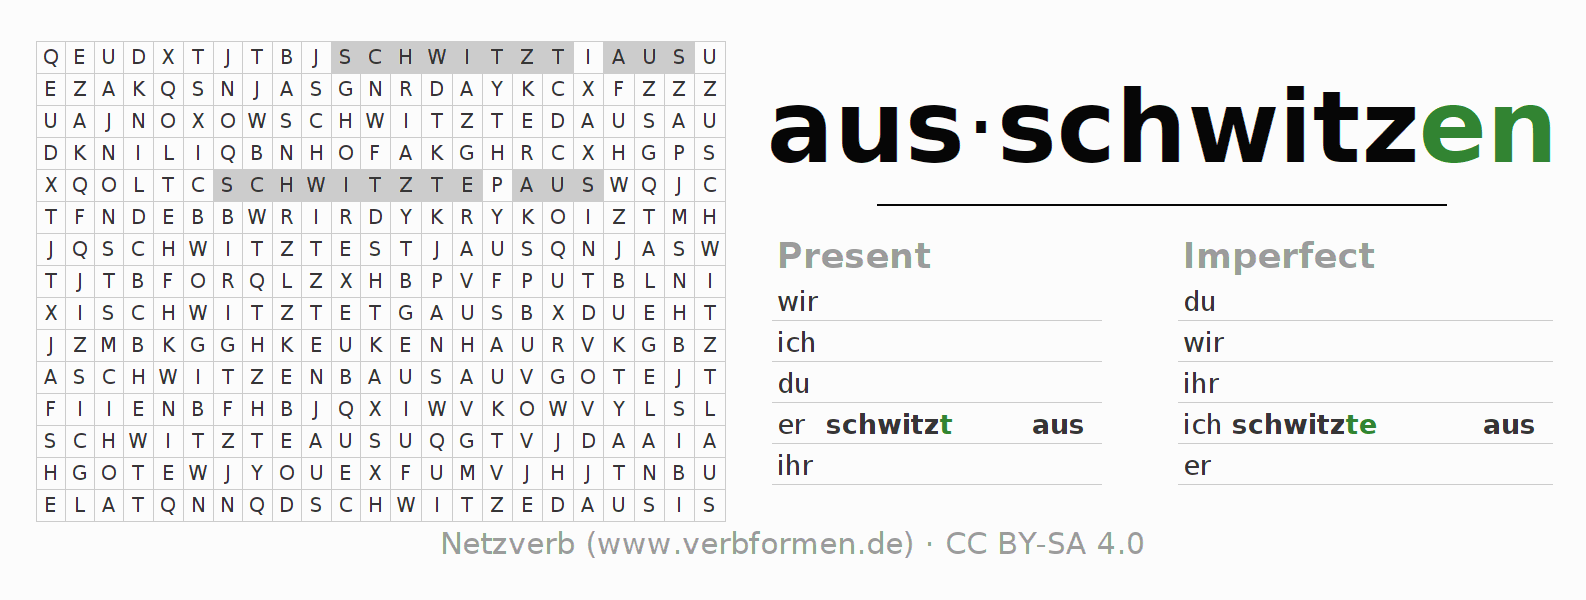 Word search puzzle for the conjugation of the verb ausschwitzen (hat)